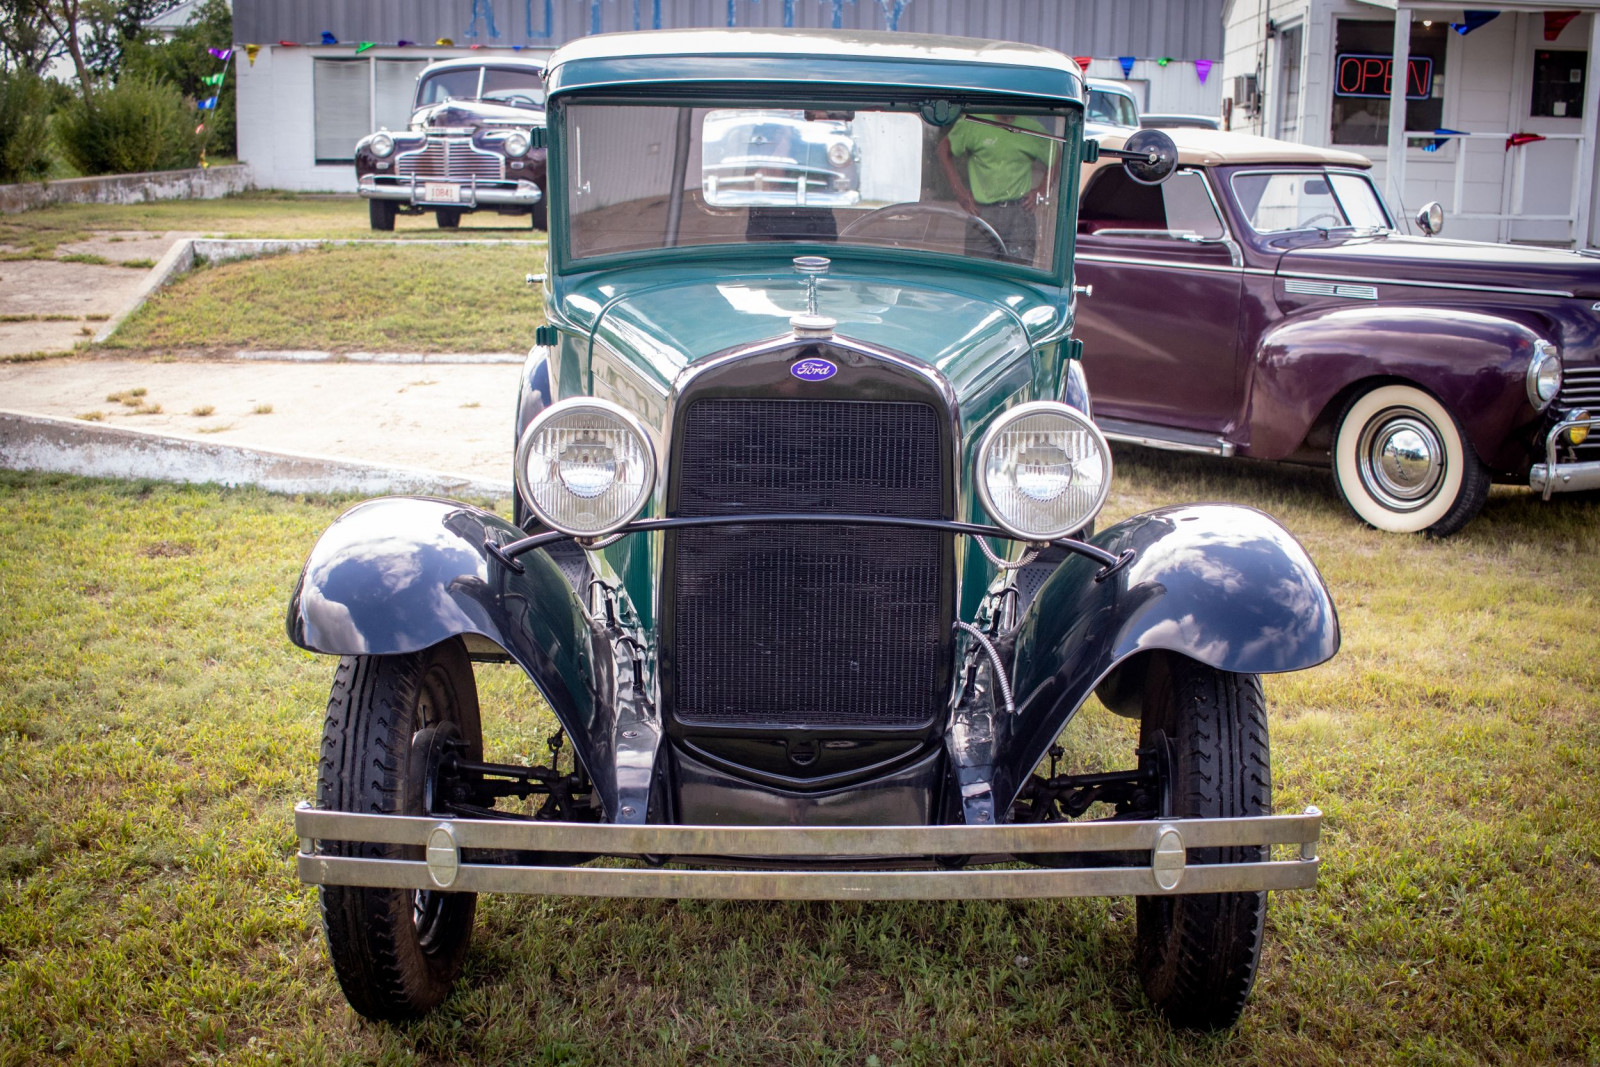 1930 Ford Model A Pickup - Image 2